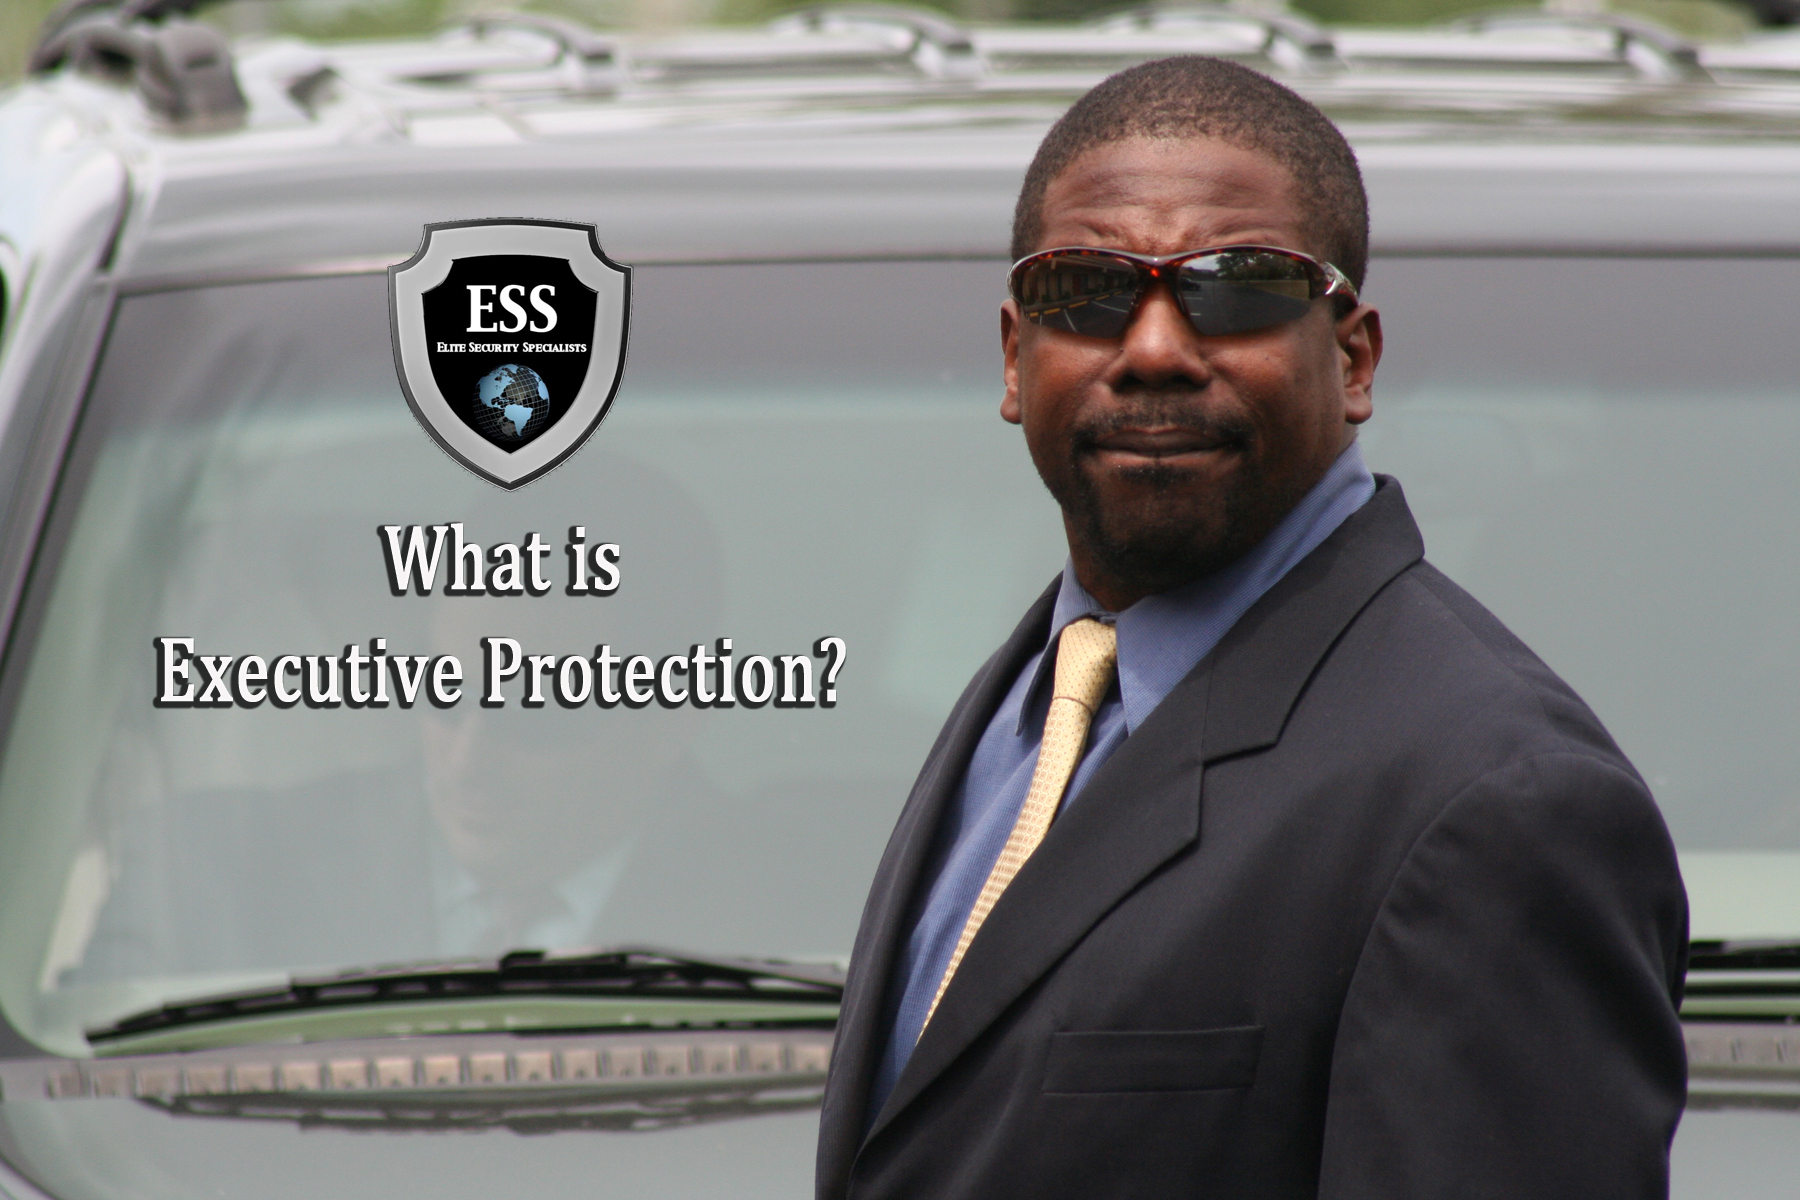 Vip Personal Protection